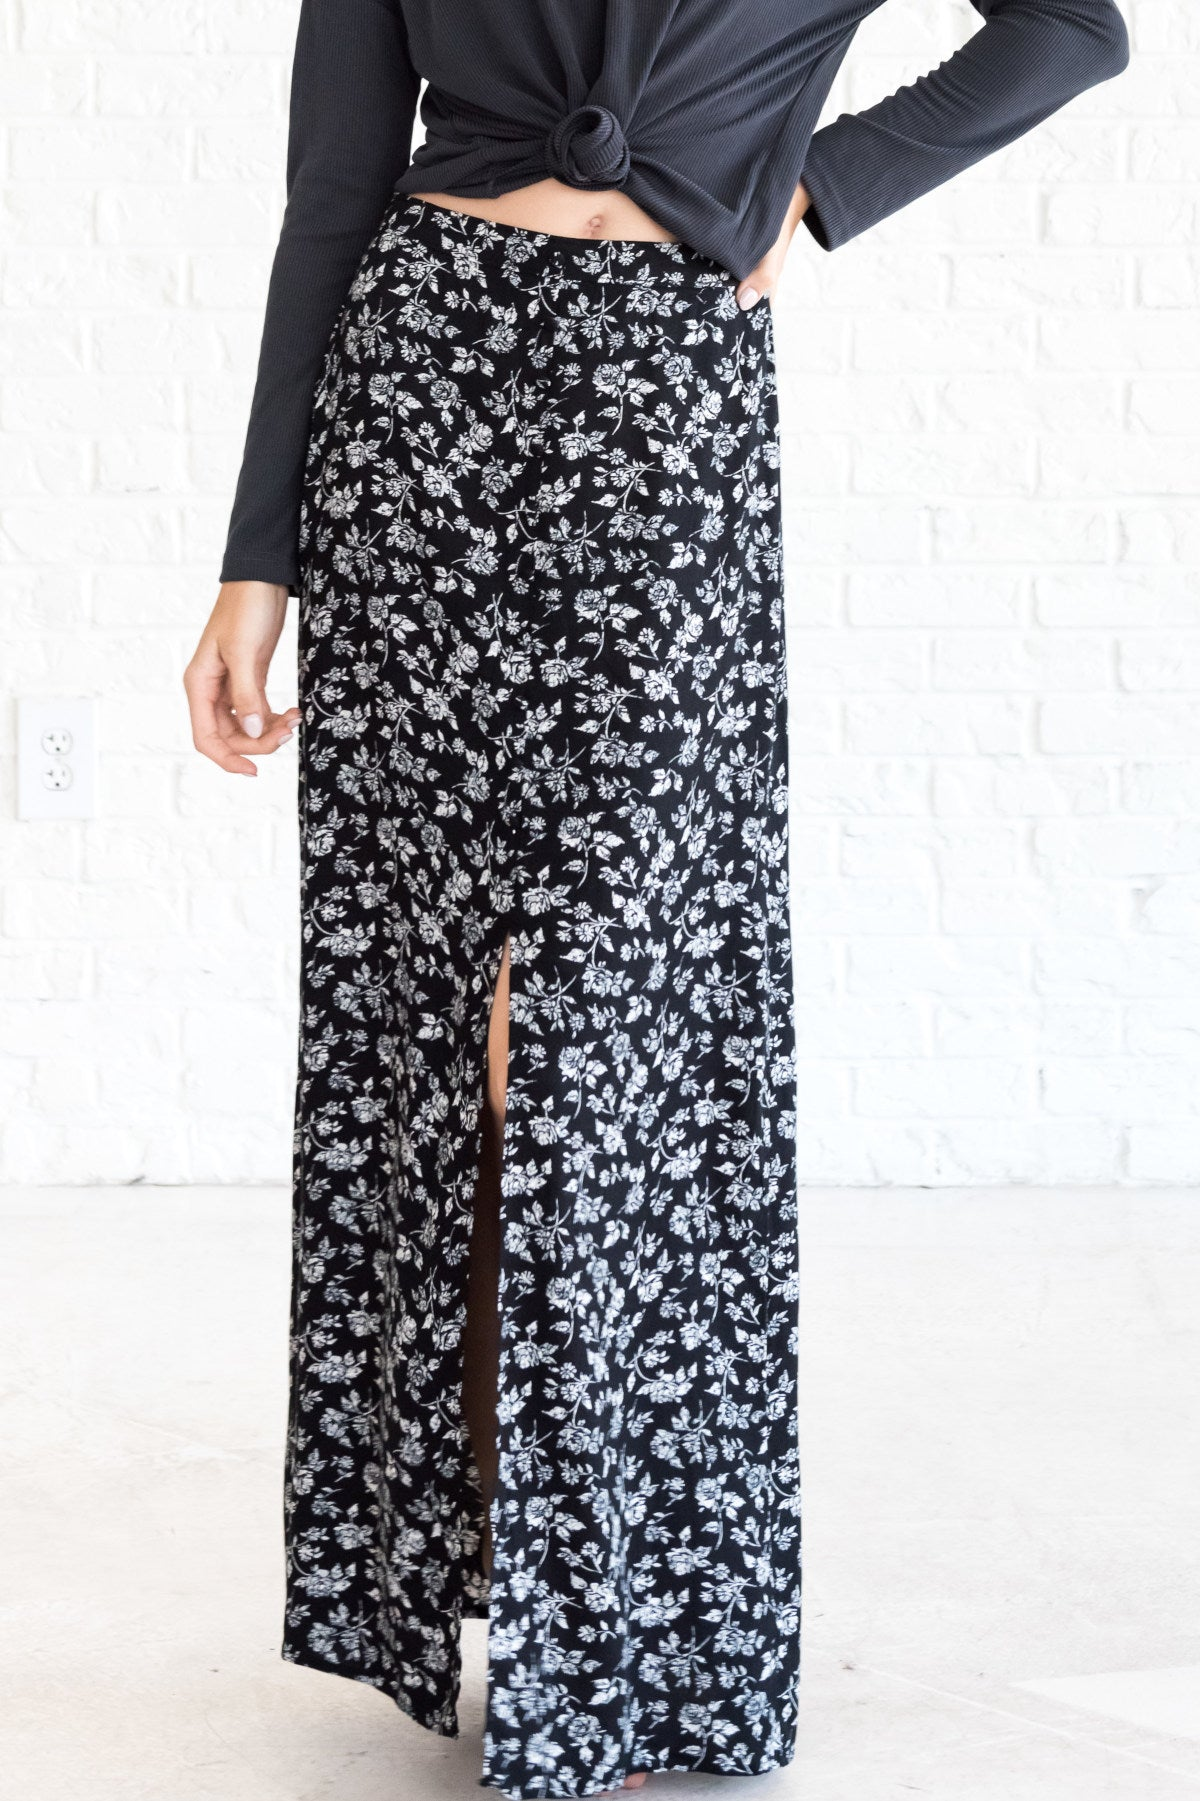 Black Floral Women's Boho Maxi Skirt